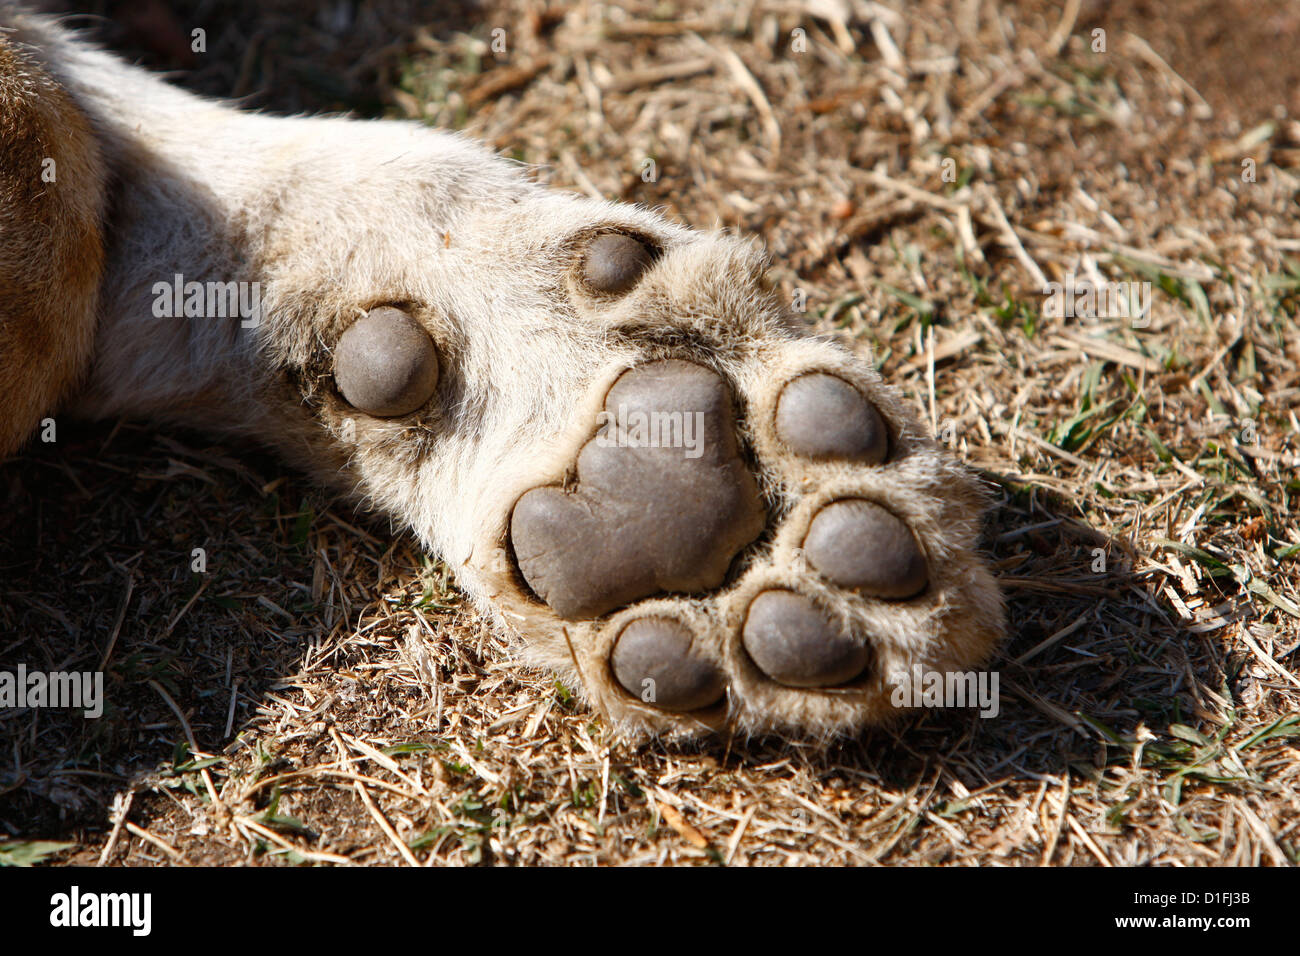 03.07.2009  Lion pew in South Africa Credit James Galvin - Stock Image